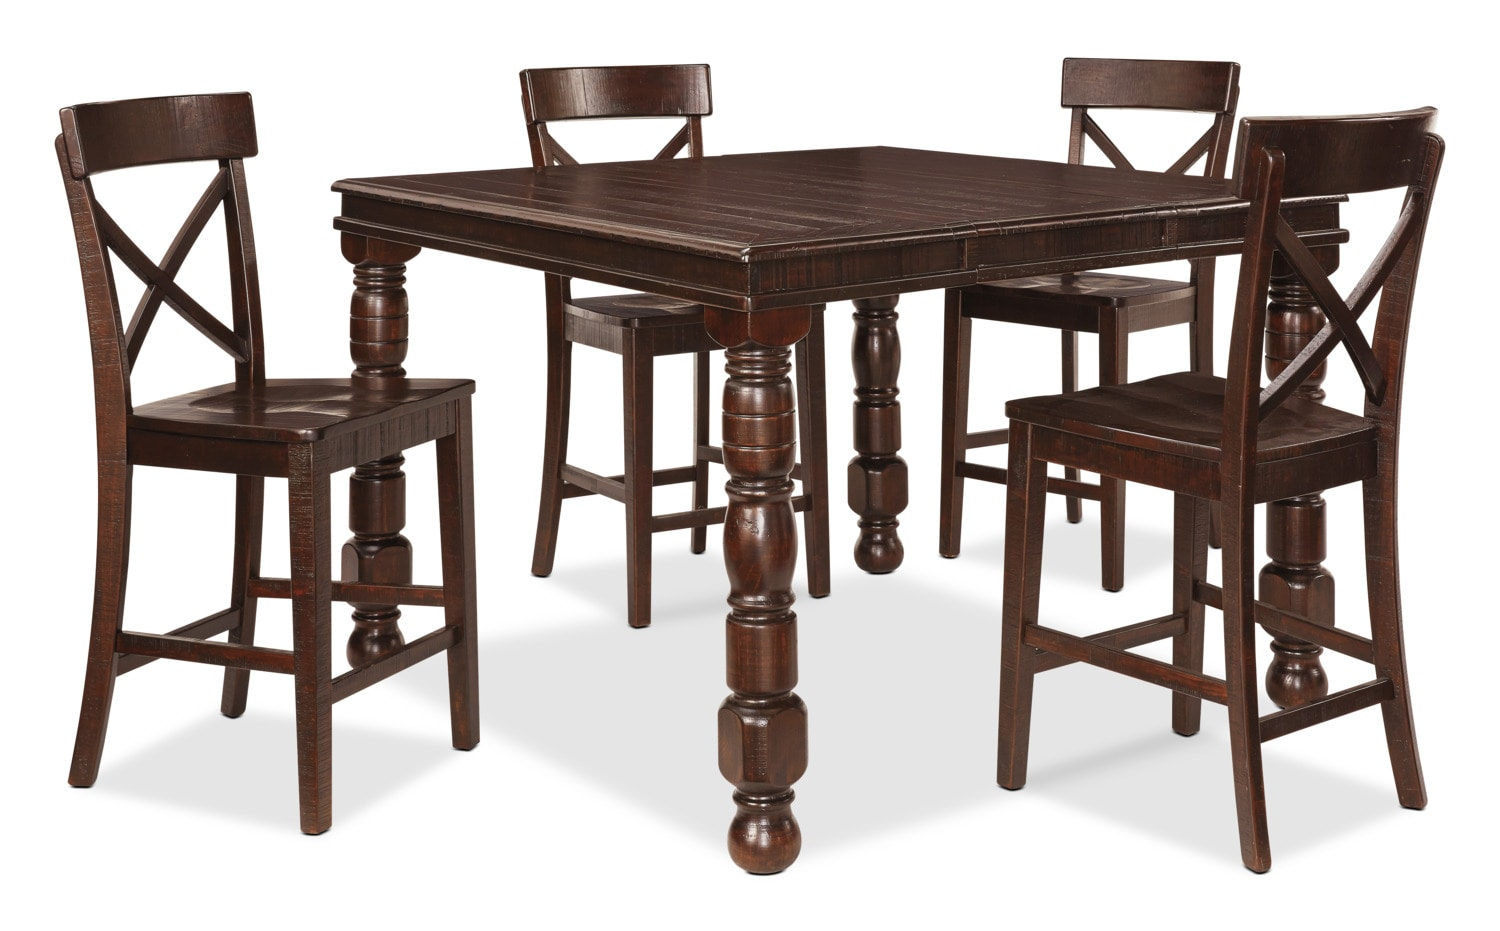 Gerlane 5-Piece Counter-Height Dining Package